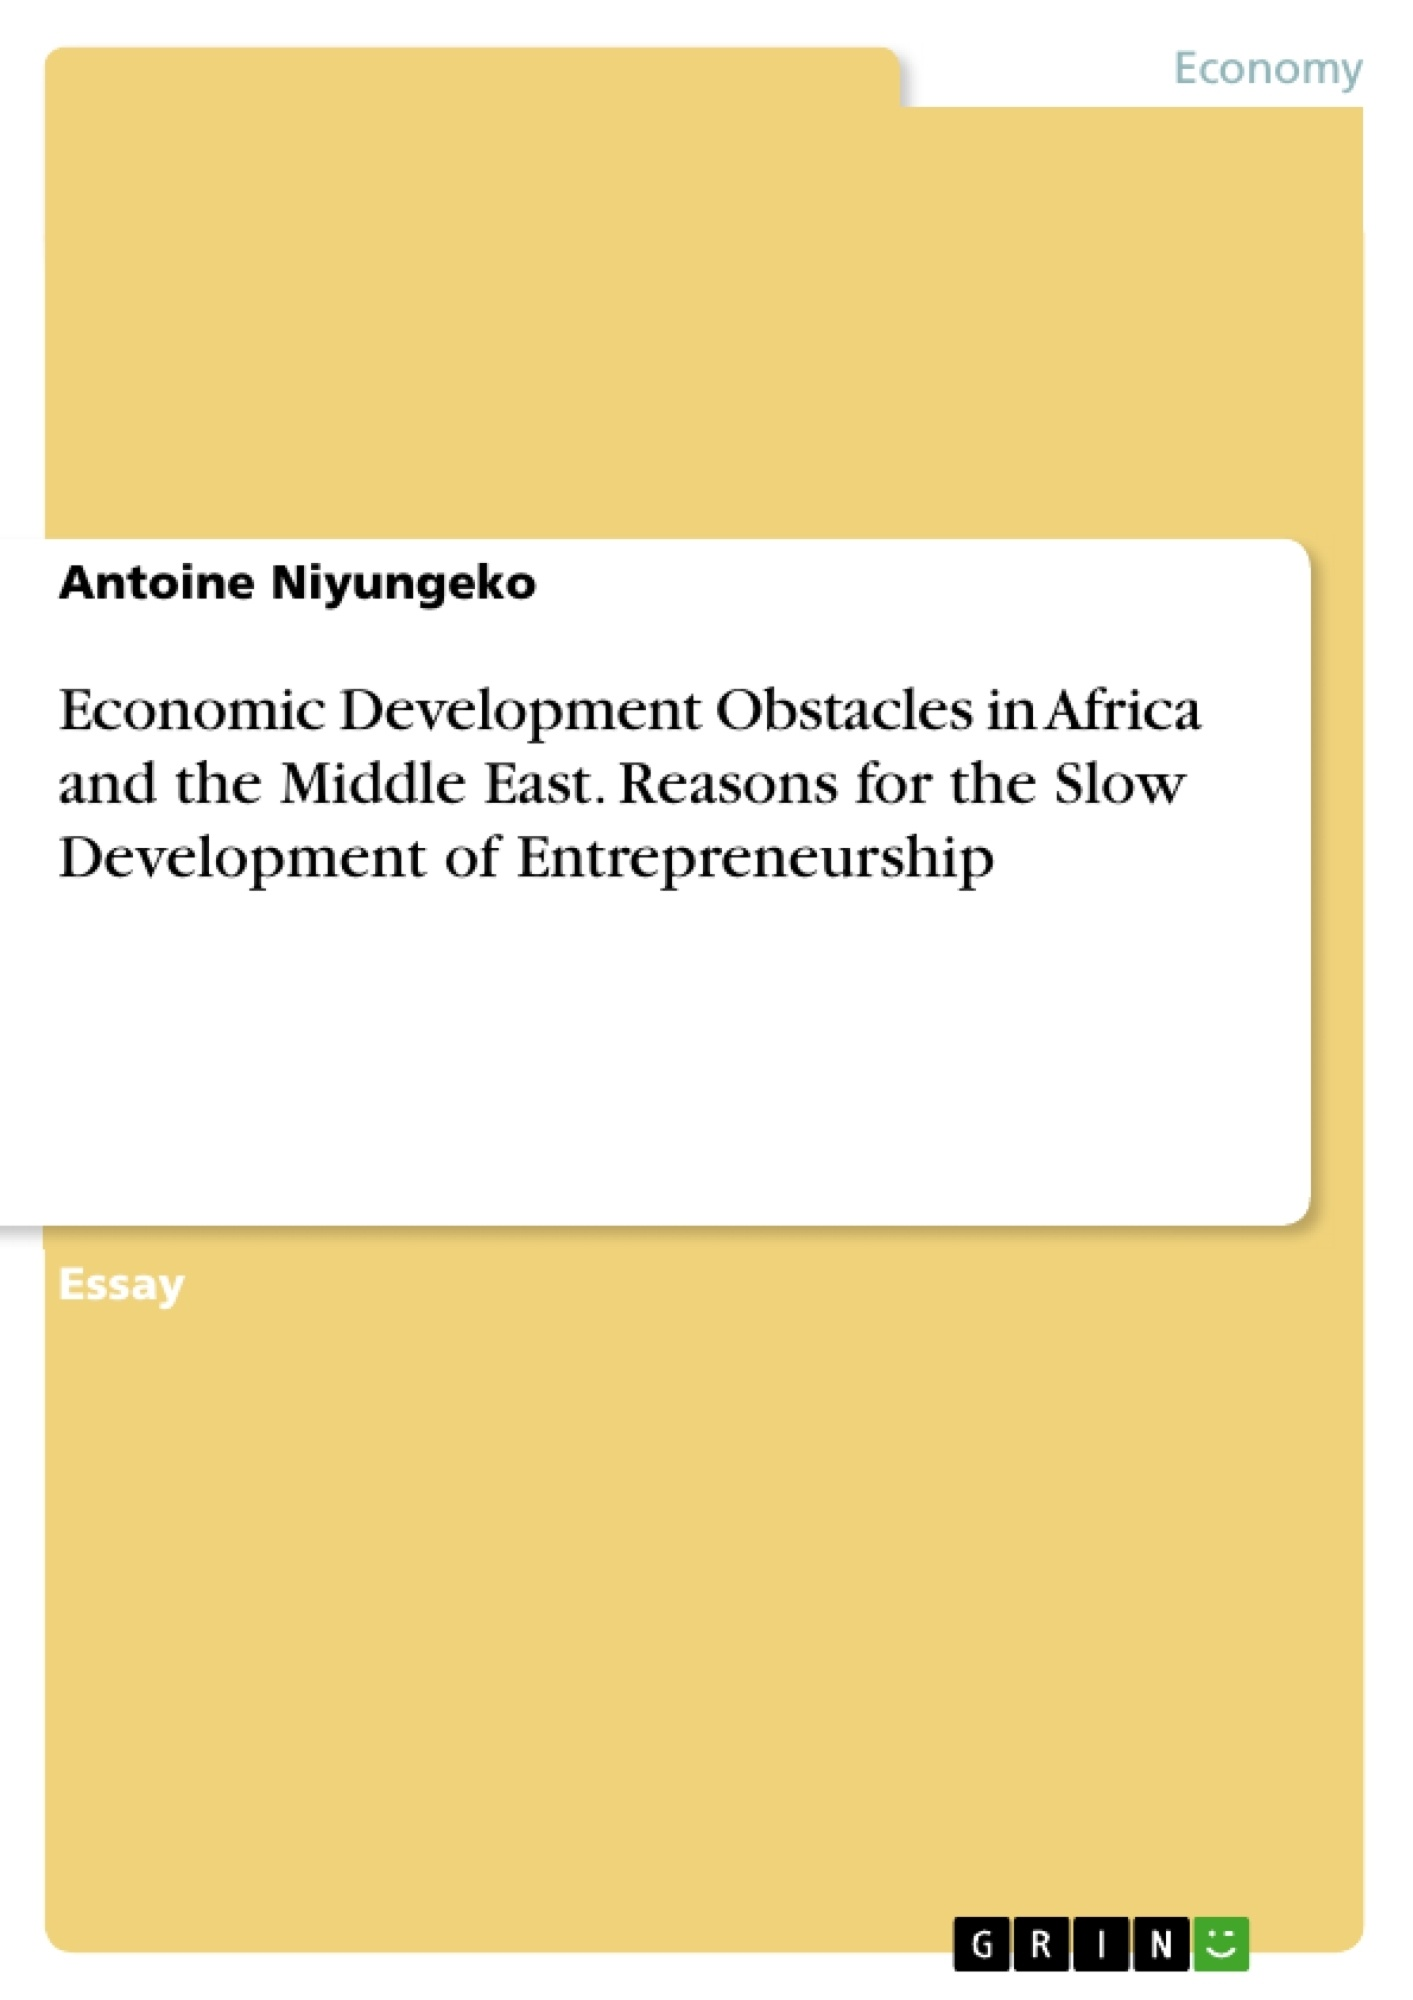 Title: Economic Development Obstacles in Africa and the Middle East. Reasons for the Slow Development of Entrepreneurship